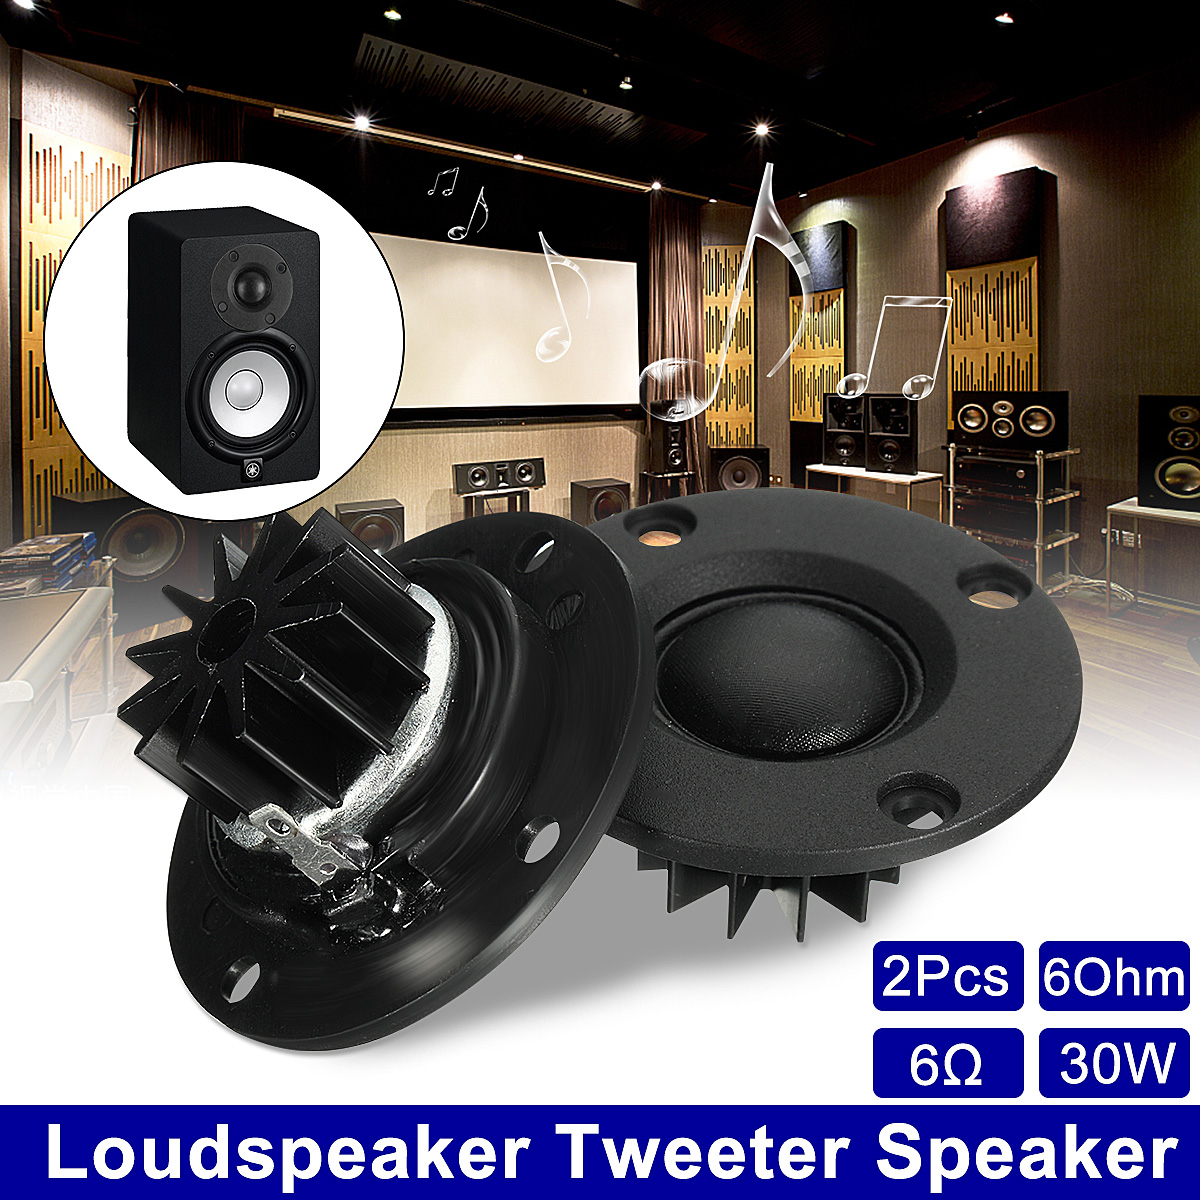 2PCS 6ohm 30W Tweeter Speaker Portable Silk Film Loudspeakers HIFI Treble With Heatsink For Stereo Sound Box DIY Accessories